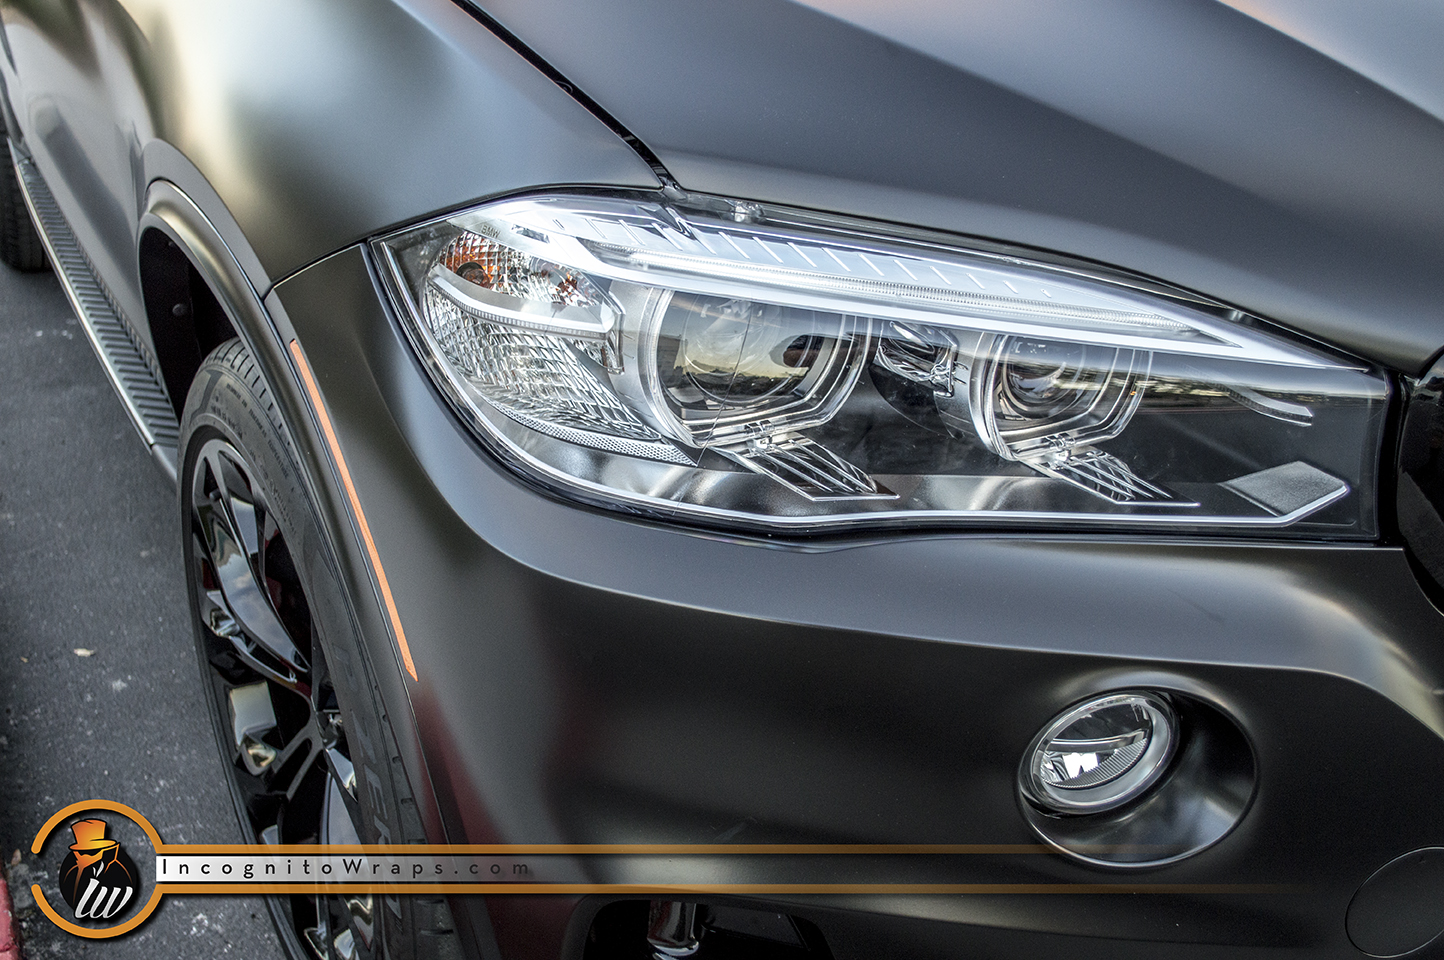 Bmw X5 Satin And Gloss Black Incognito Wraps